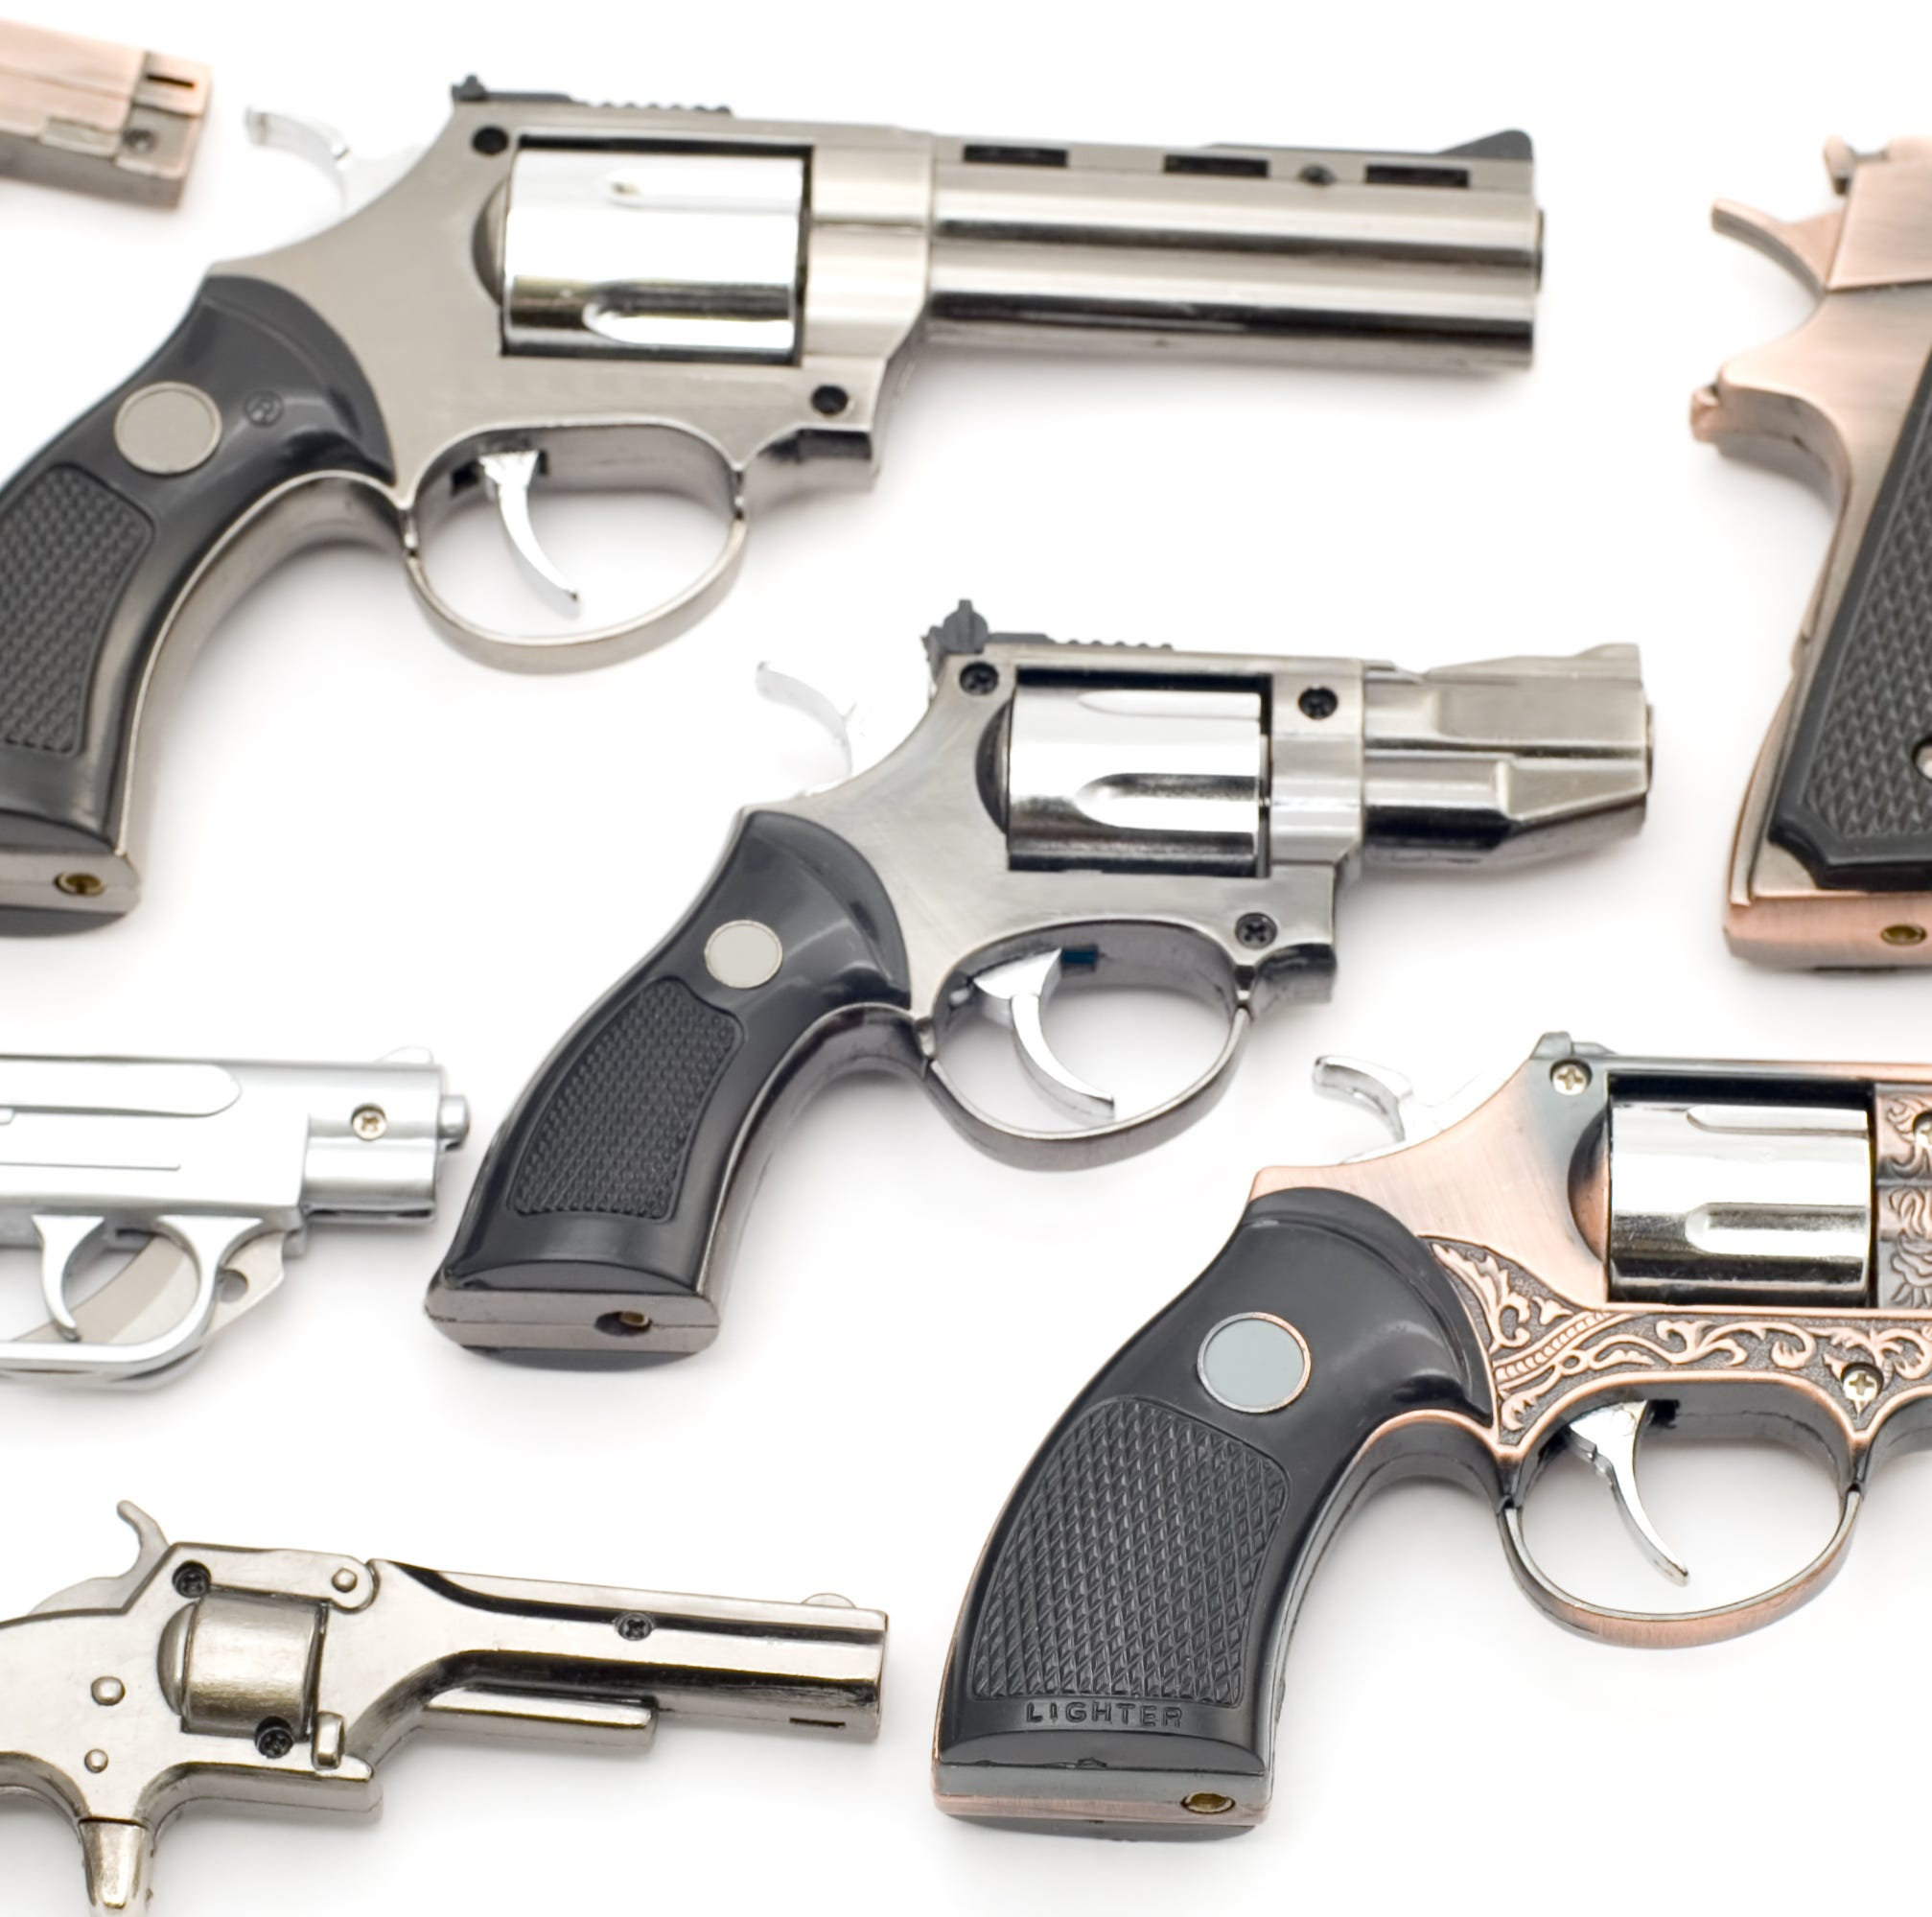 Daughter tells father about loaded gun in his rental car